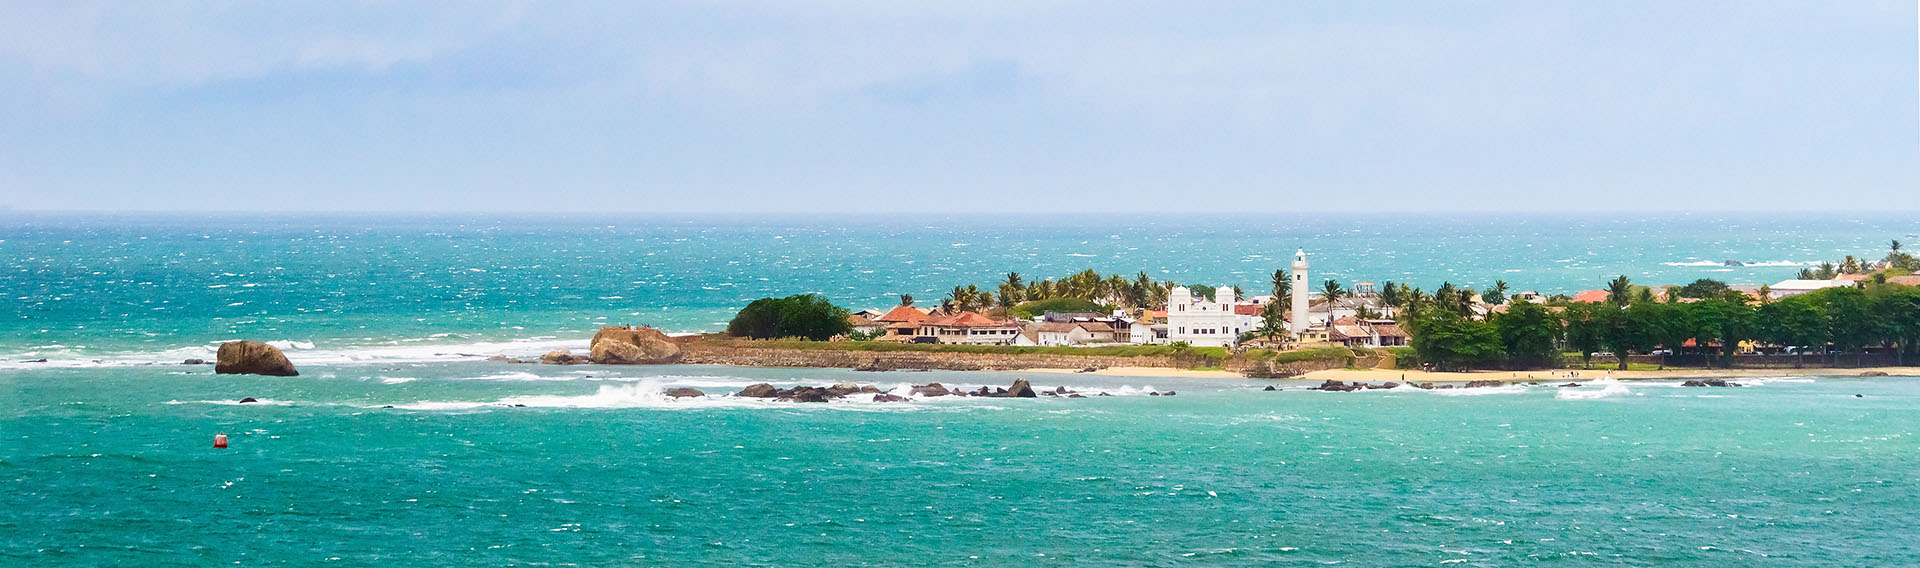 Sri Lanka, Southern Coast, Galle